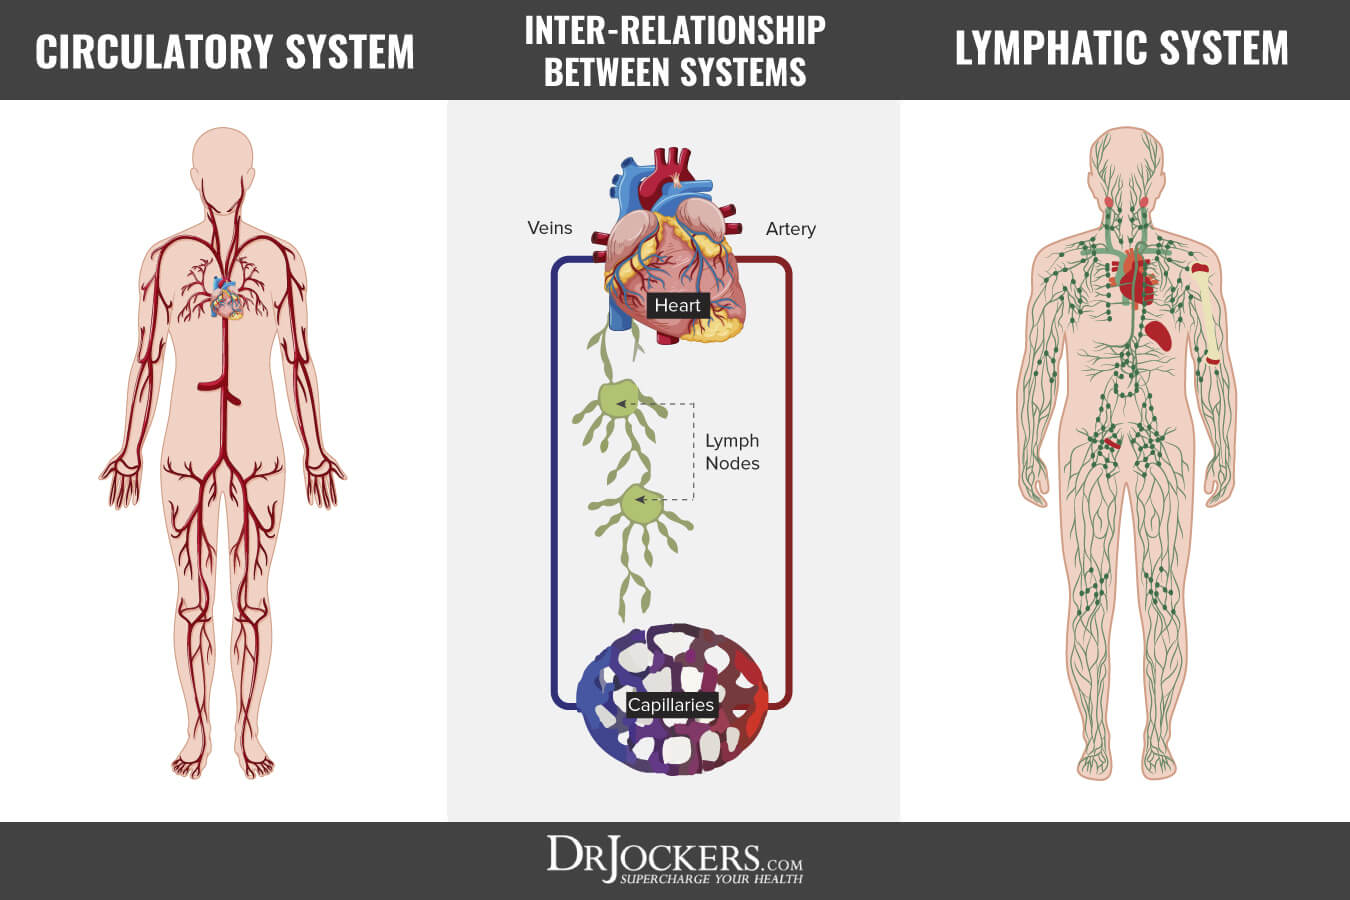 10 Ways To Improve Your Lymphatic System